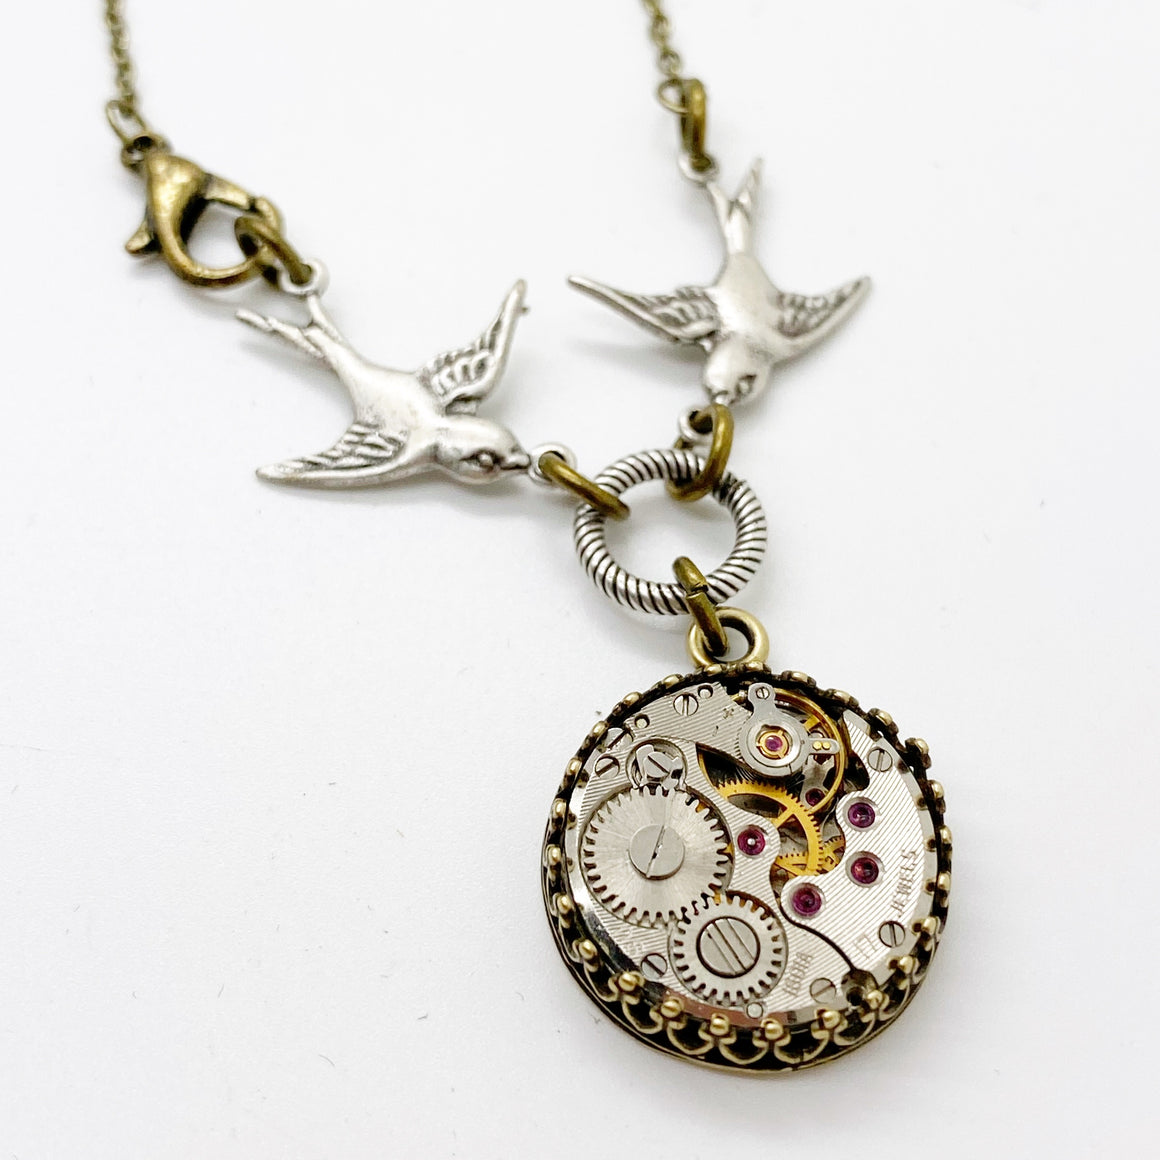 Steampunk Sparrow Necklace - The Victorian Magpie